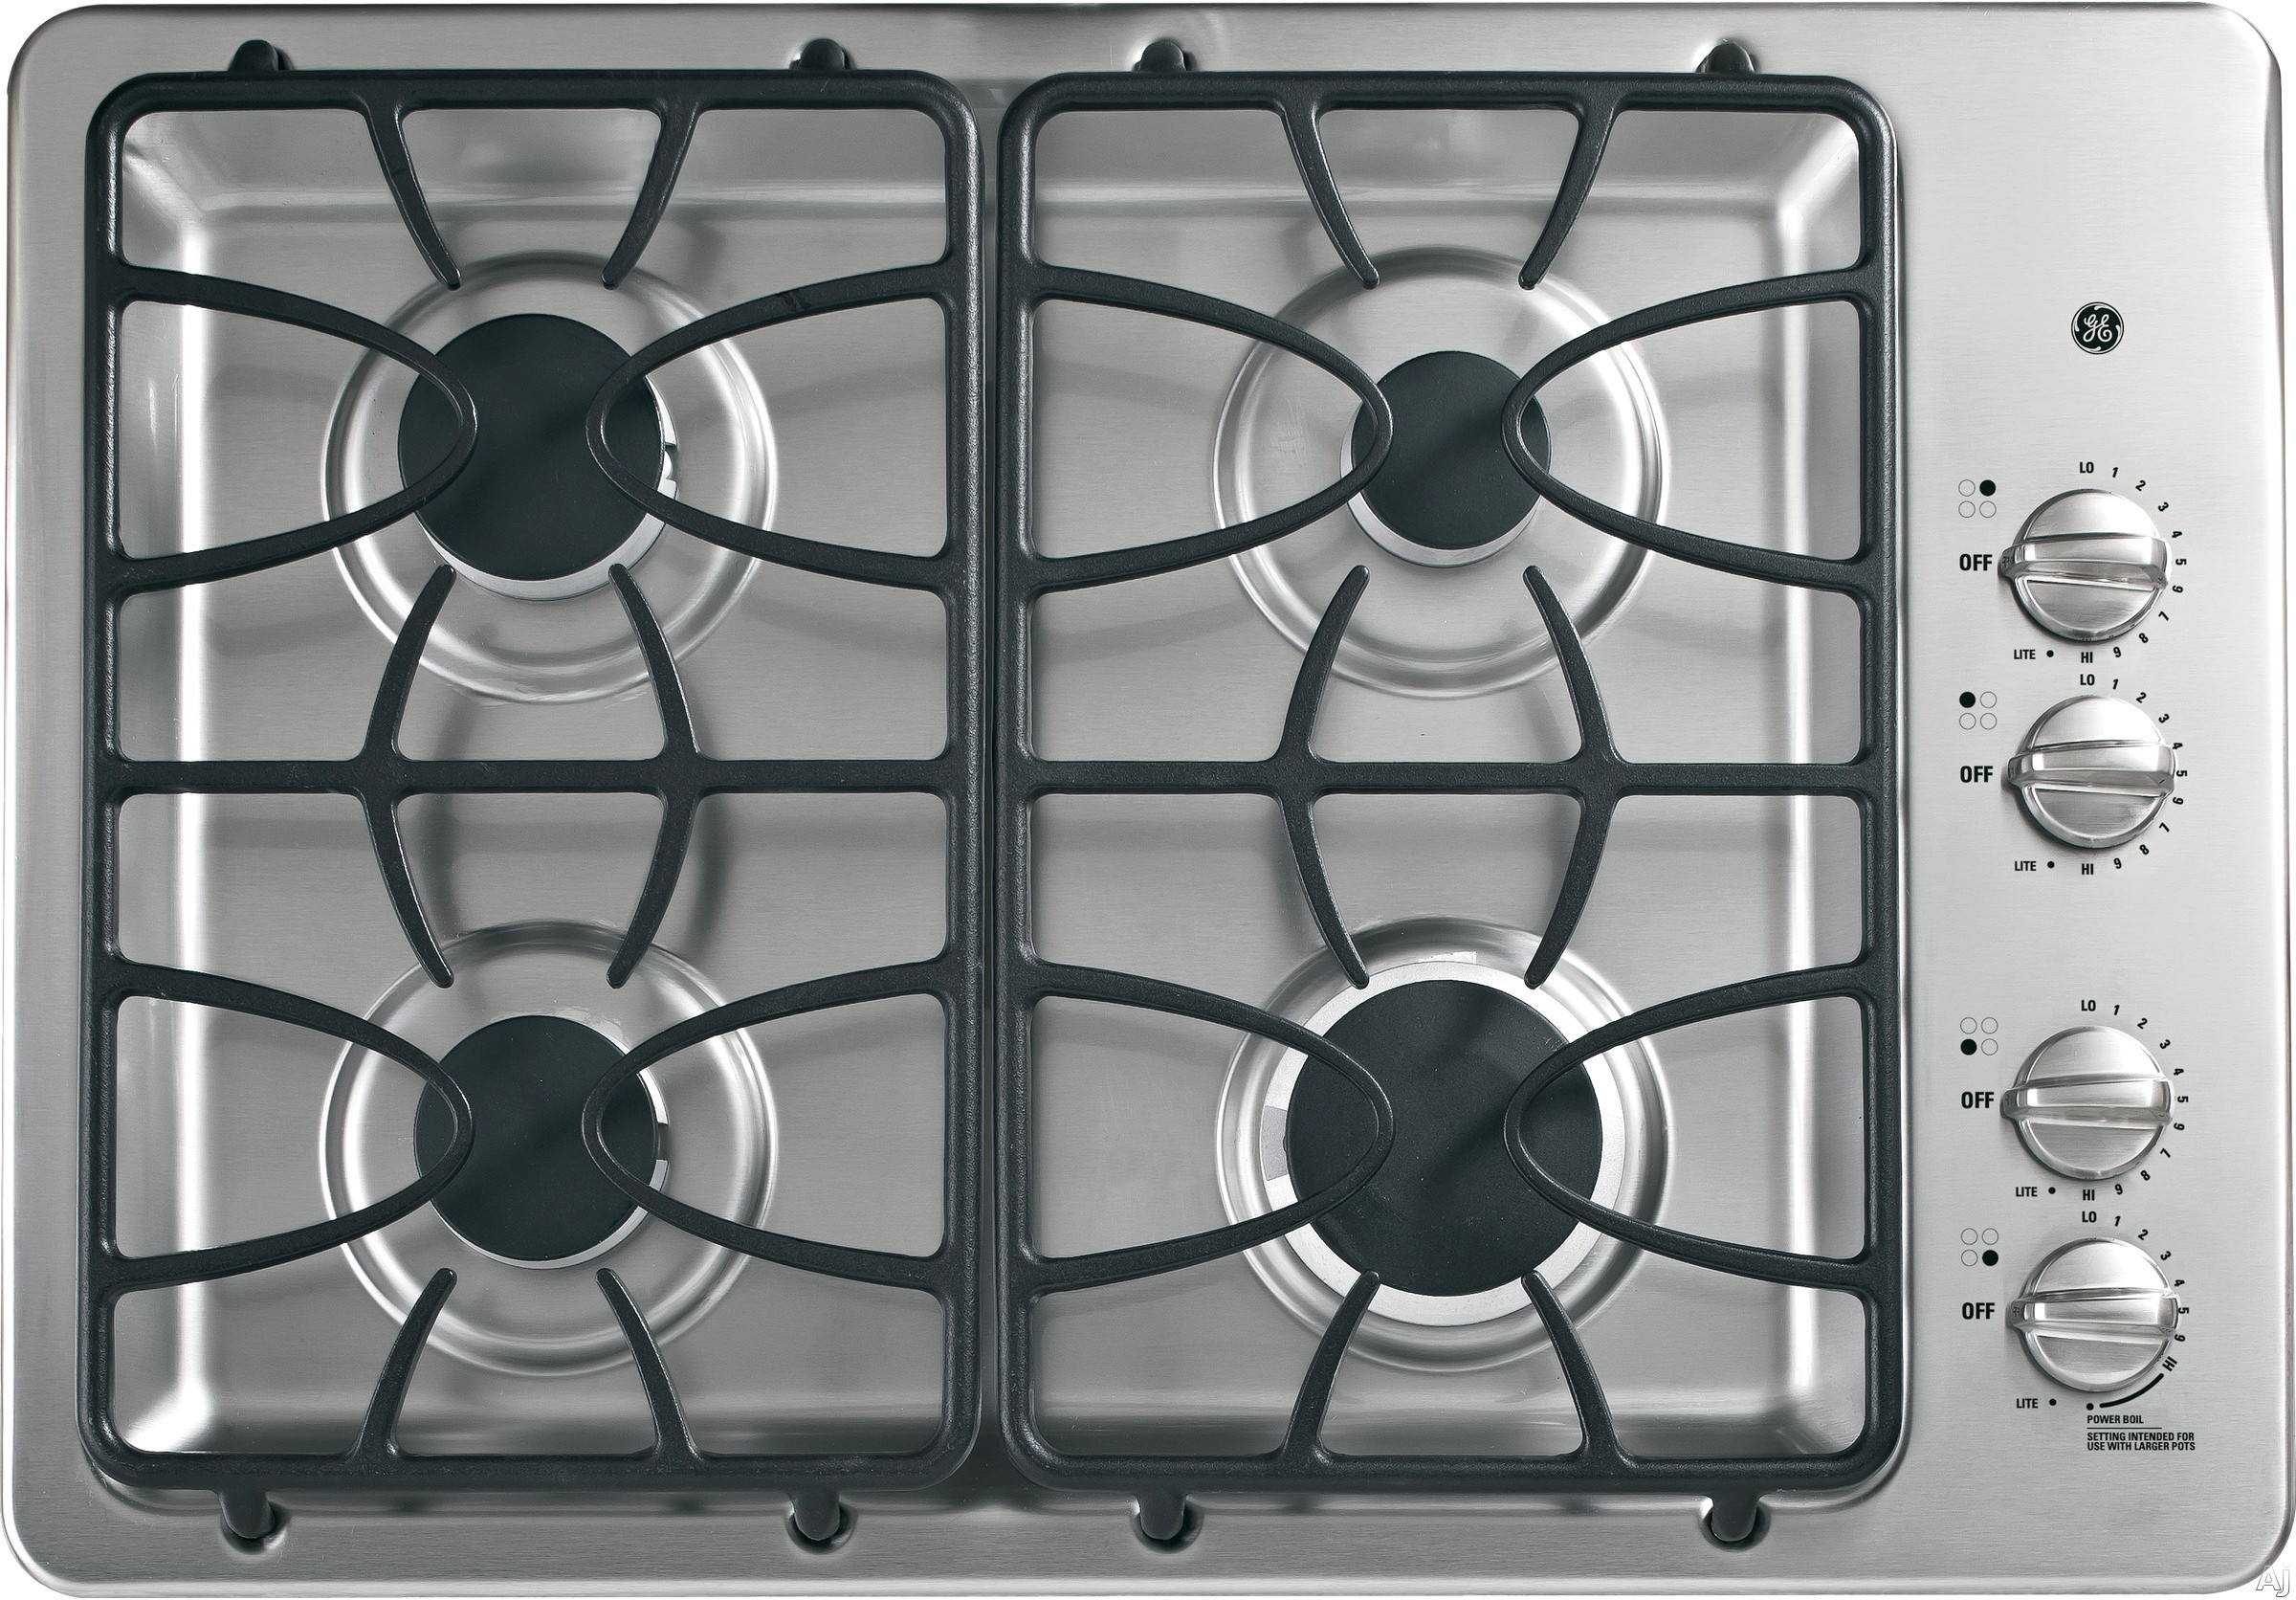 GE JGP333SETSS 30 Inch Gas Cooktop with 4 Sealed Burners, PowerBoil 15,000 BTU Burner, Precise Simmer Burner, Dishwasher-Safe Medium-Cast Grates, ADA Compliant and GE Fits! Guarantee: Stainless Steel